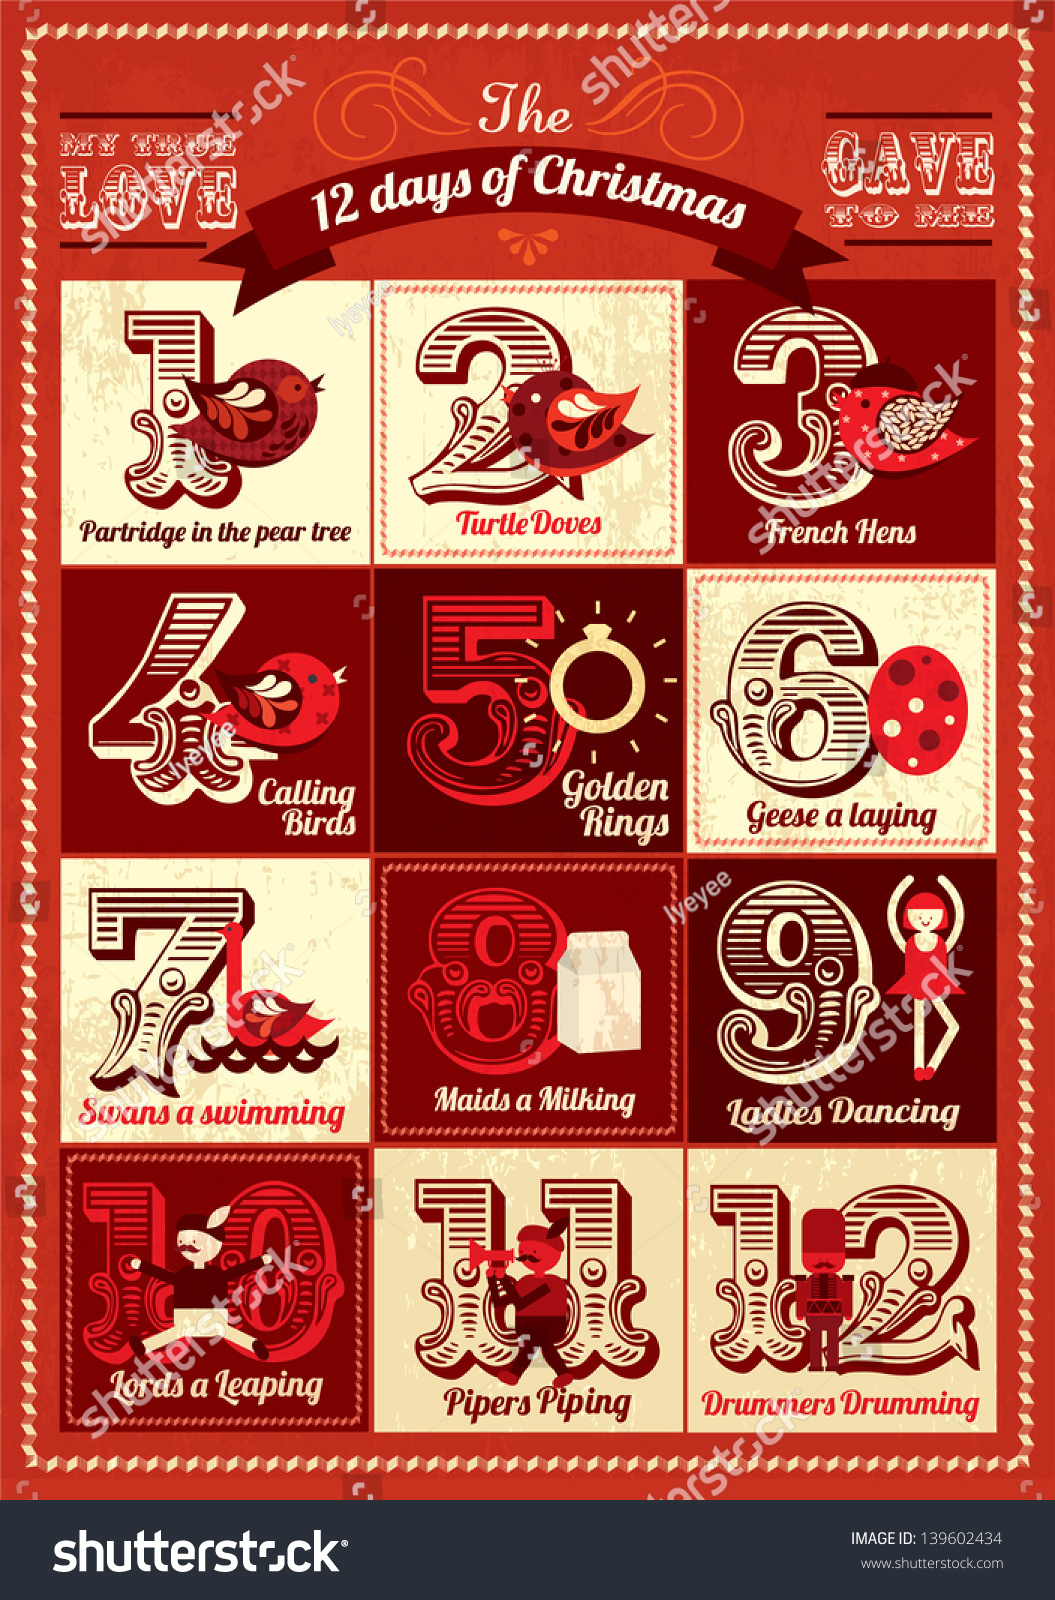 Christmas Calendar Illustration : Vintage twelve days of christmas calendar template vector